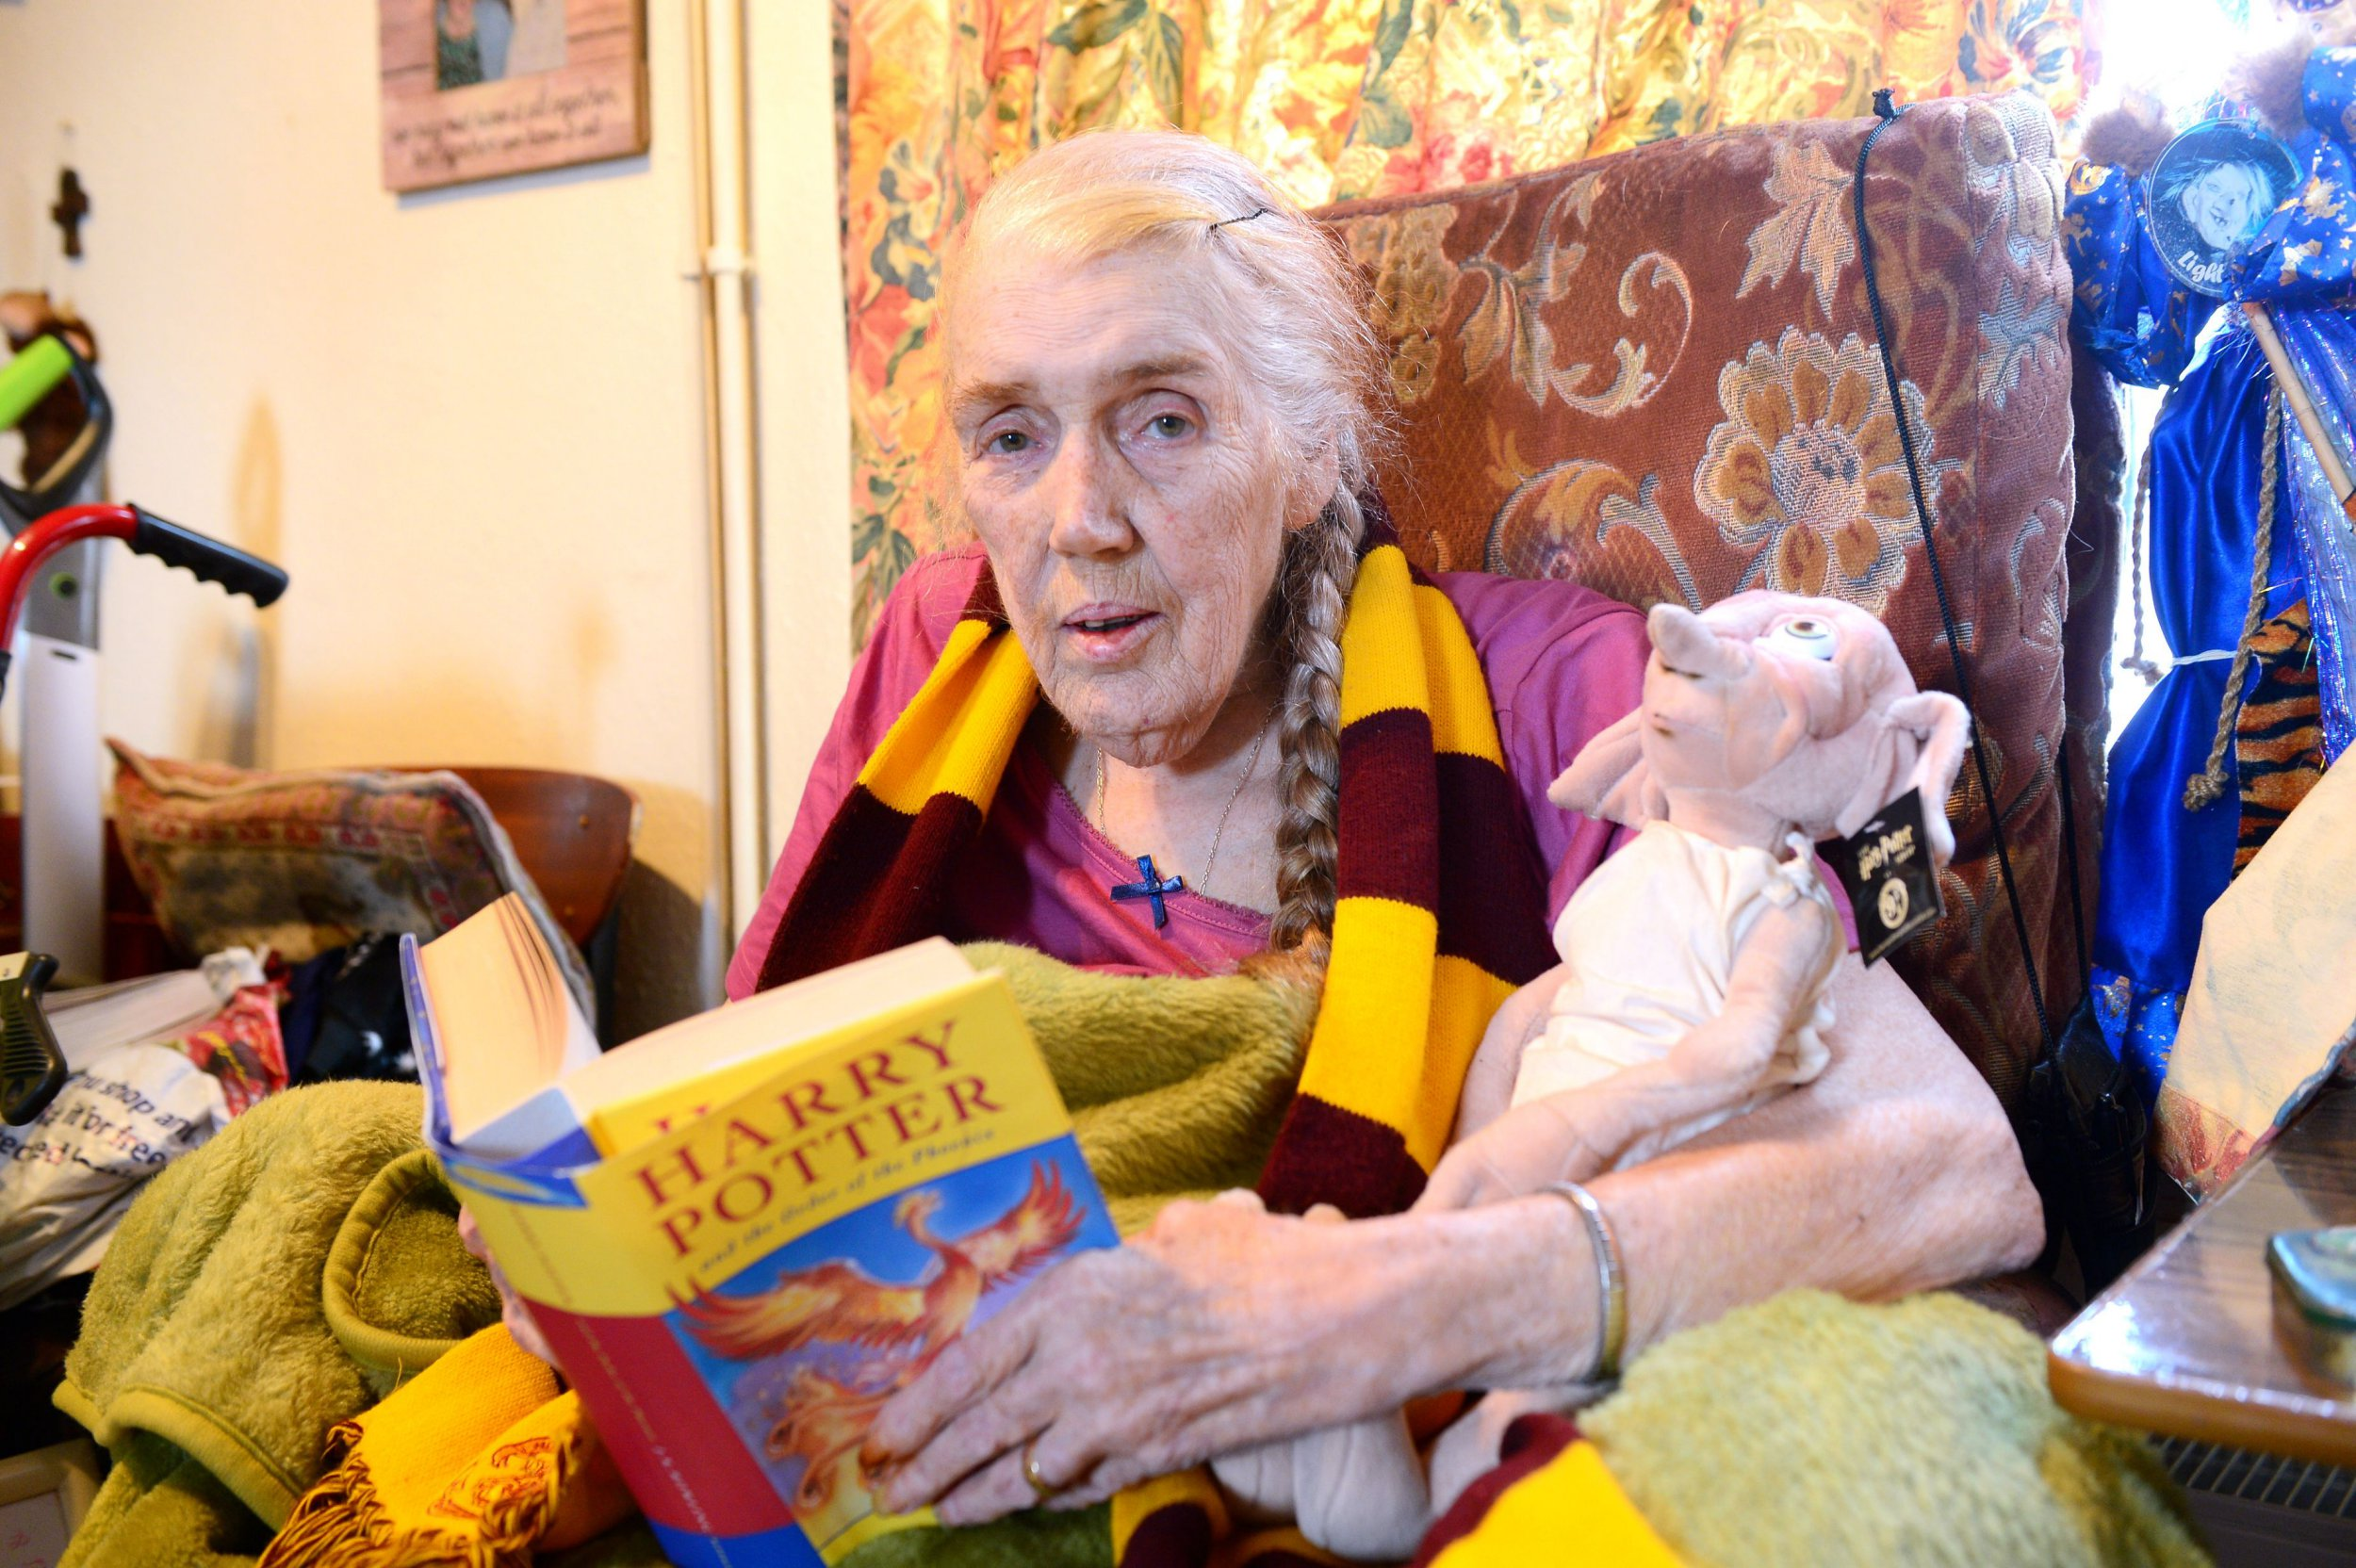 Harry Potter superfan Veronica Leaning, of Grimsby, who is suffering from terminal cancer has prepared everything for her funeral, including a Harry Potter themed coffin. Credit: Grimsby Telegraph/BPM Media Buy this photo at www.grimsbytelegraph.co.uk/buyaphoto or by contacting 03444 060 910 There are pictures from this story. REQUESTED BY: Connor Lynch CONTACT: DATE: 24/08/2018 POSTCODE: KEYWORDS: